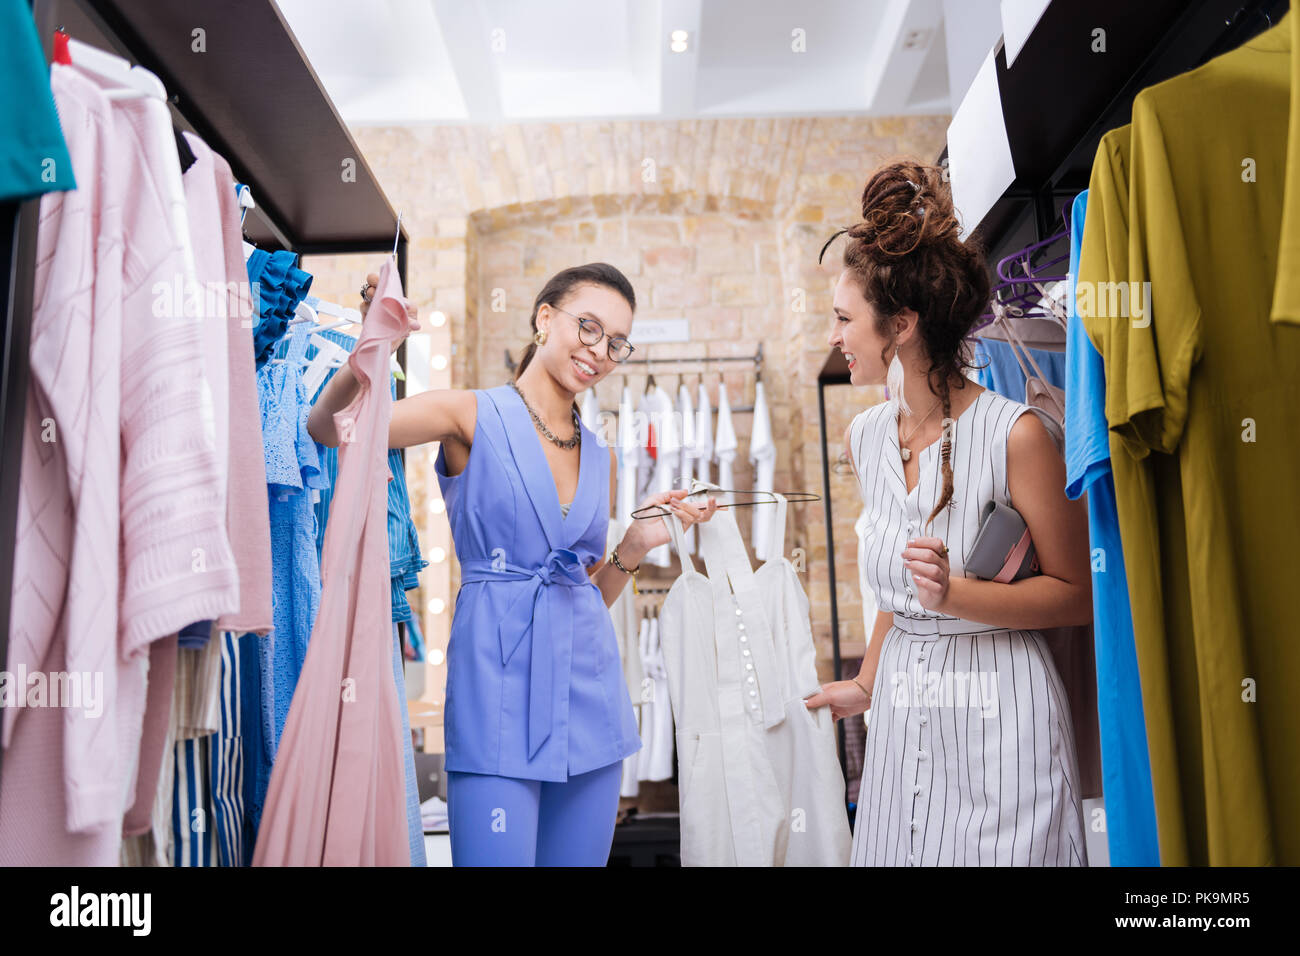 Merry female stylist offering outfit to woman - Stock Image